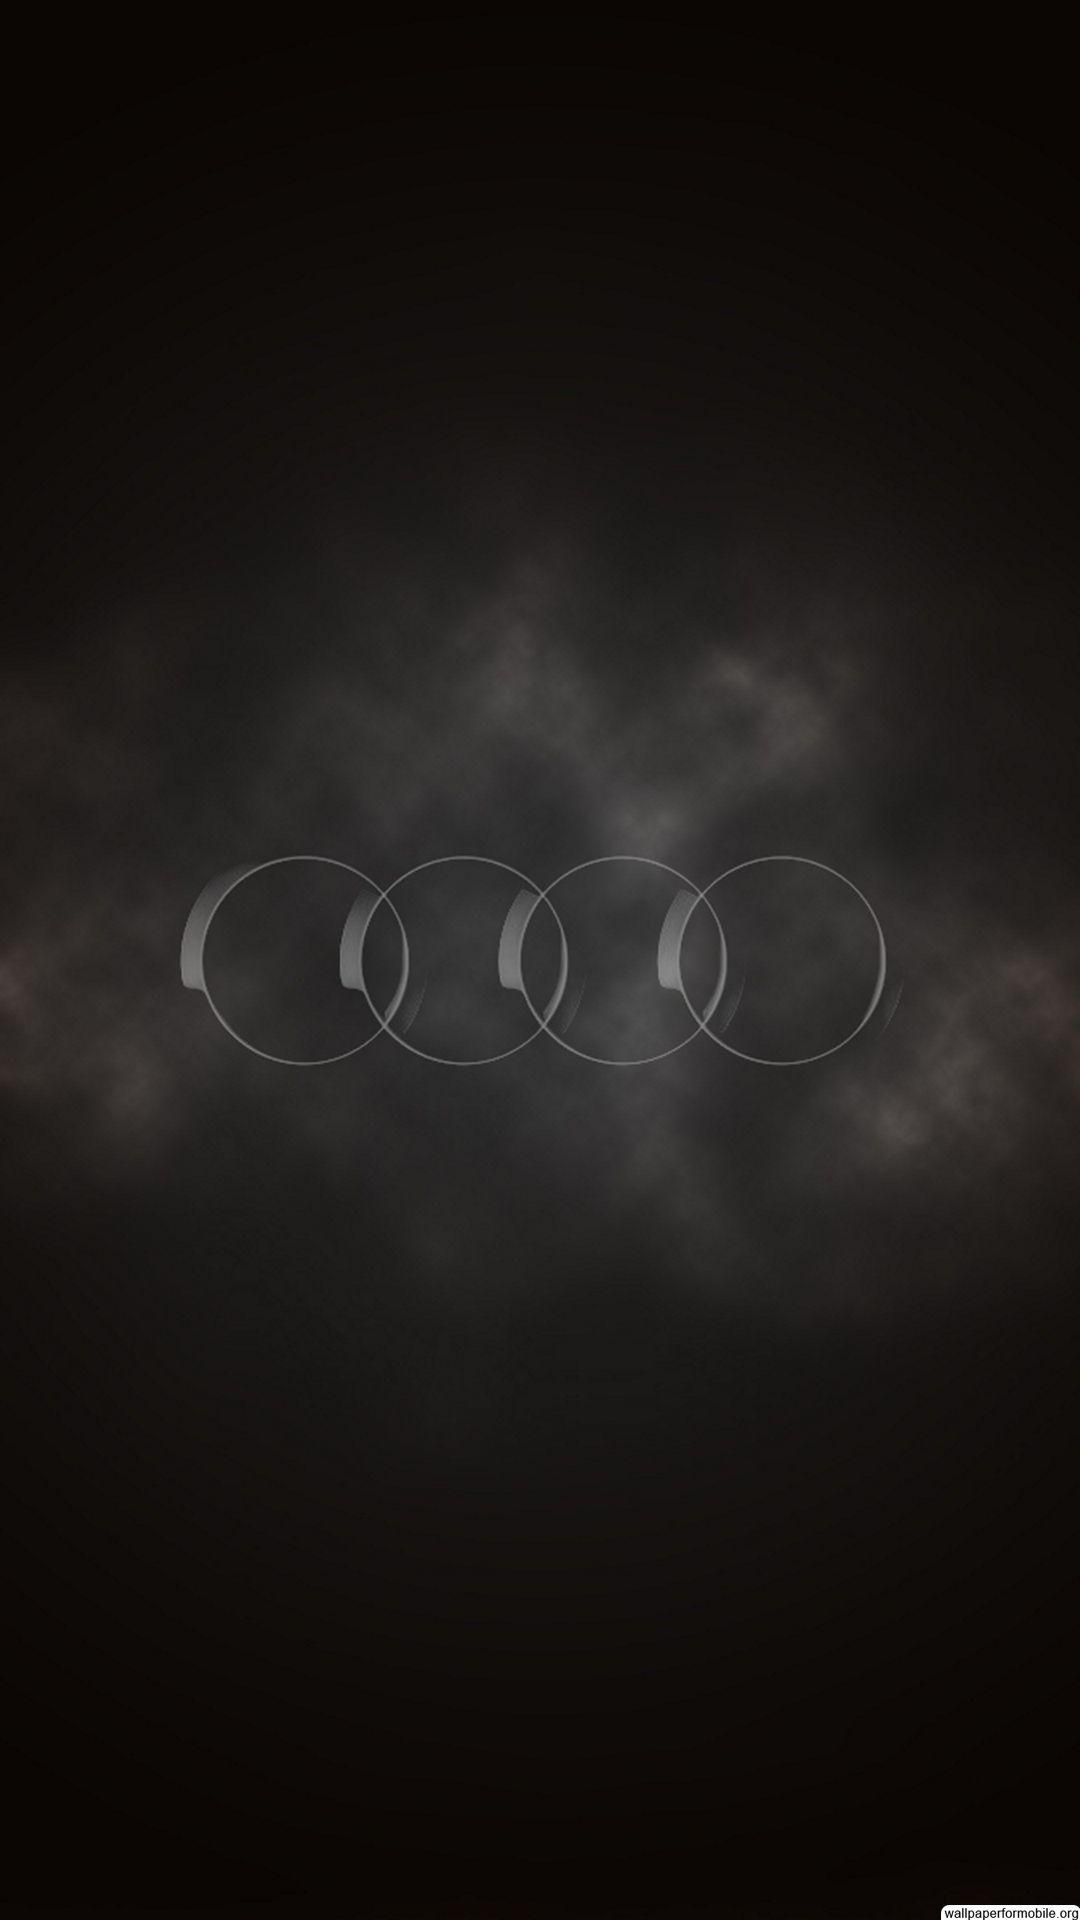 audi logo wallpapers wallpaper cave | Cars | Logo wallpaper hd, Logos, Wallpaper